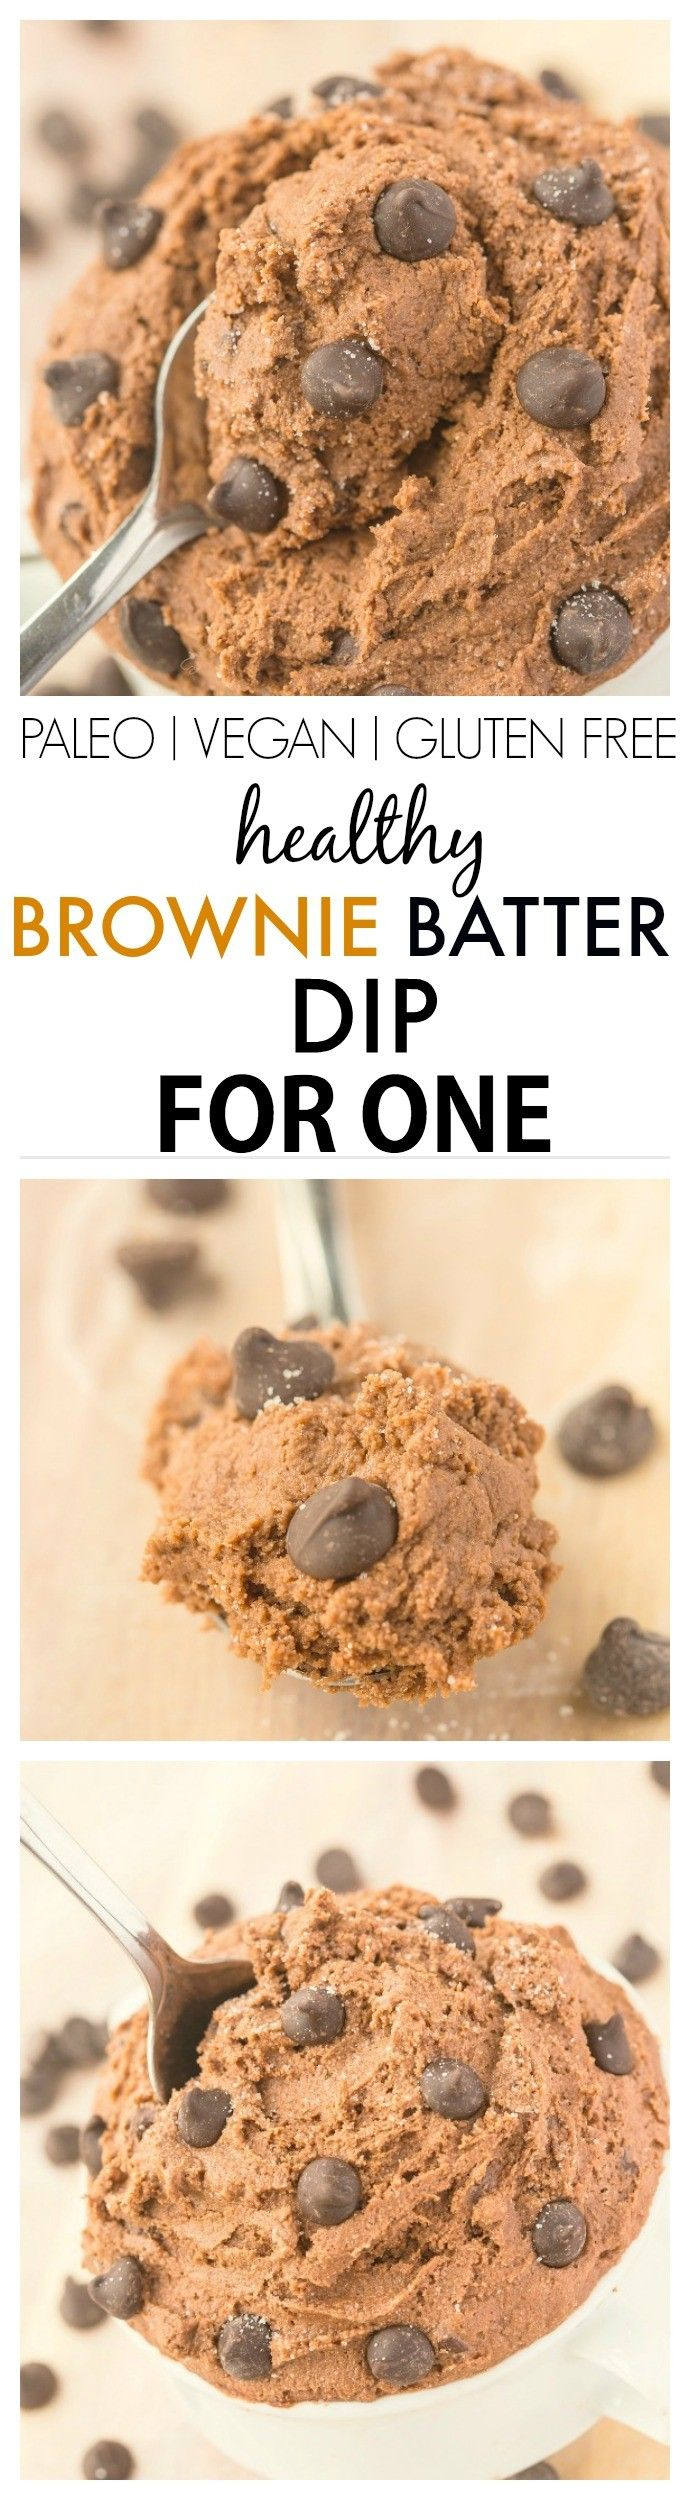 Healthy Brownie Batter Dip for ONE- Smooth, creamy and ready in five minutes, there is NO butter, white flour, sugar or oil but doesn't taste 'healthy'! {vegan, gluten free, paleo, high protein recipe}-